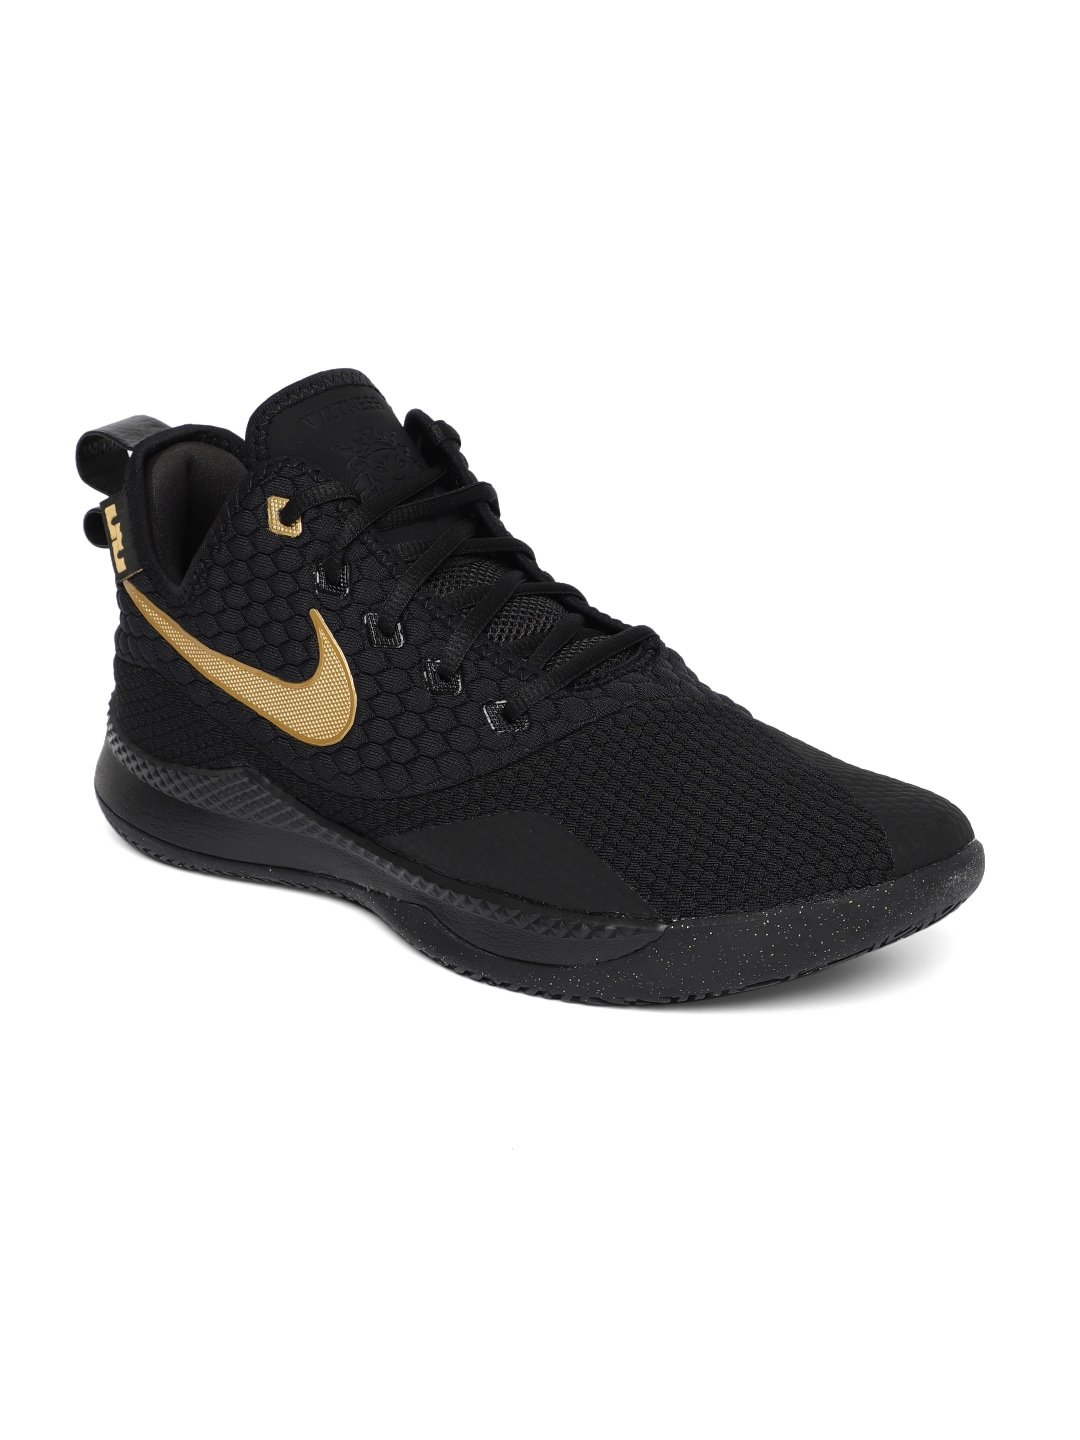 a76c560abdf8 Nike Black Shoes - Buy Nike Black Shoes Online in India